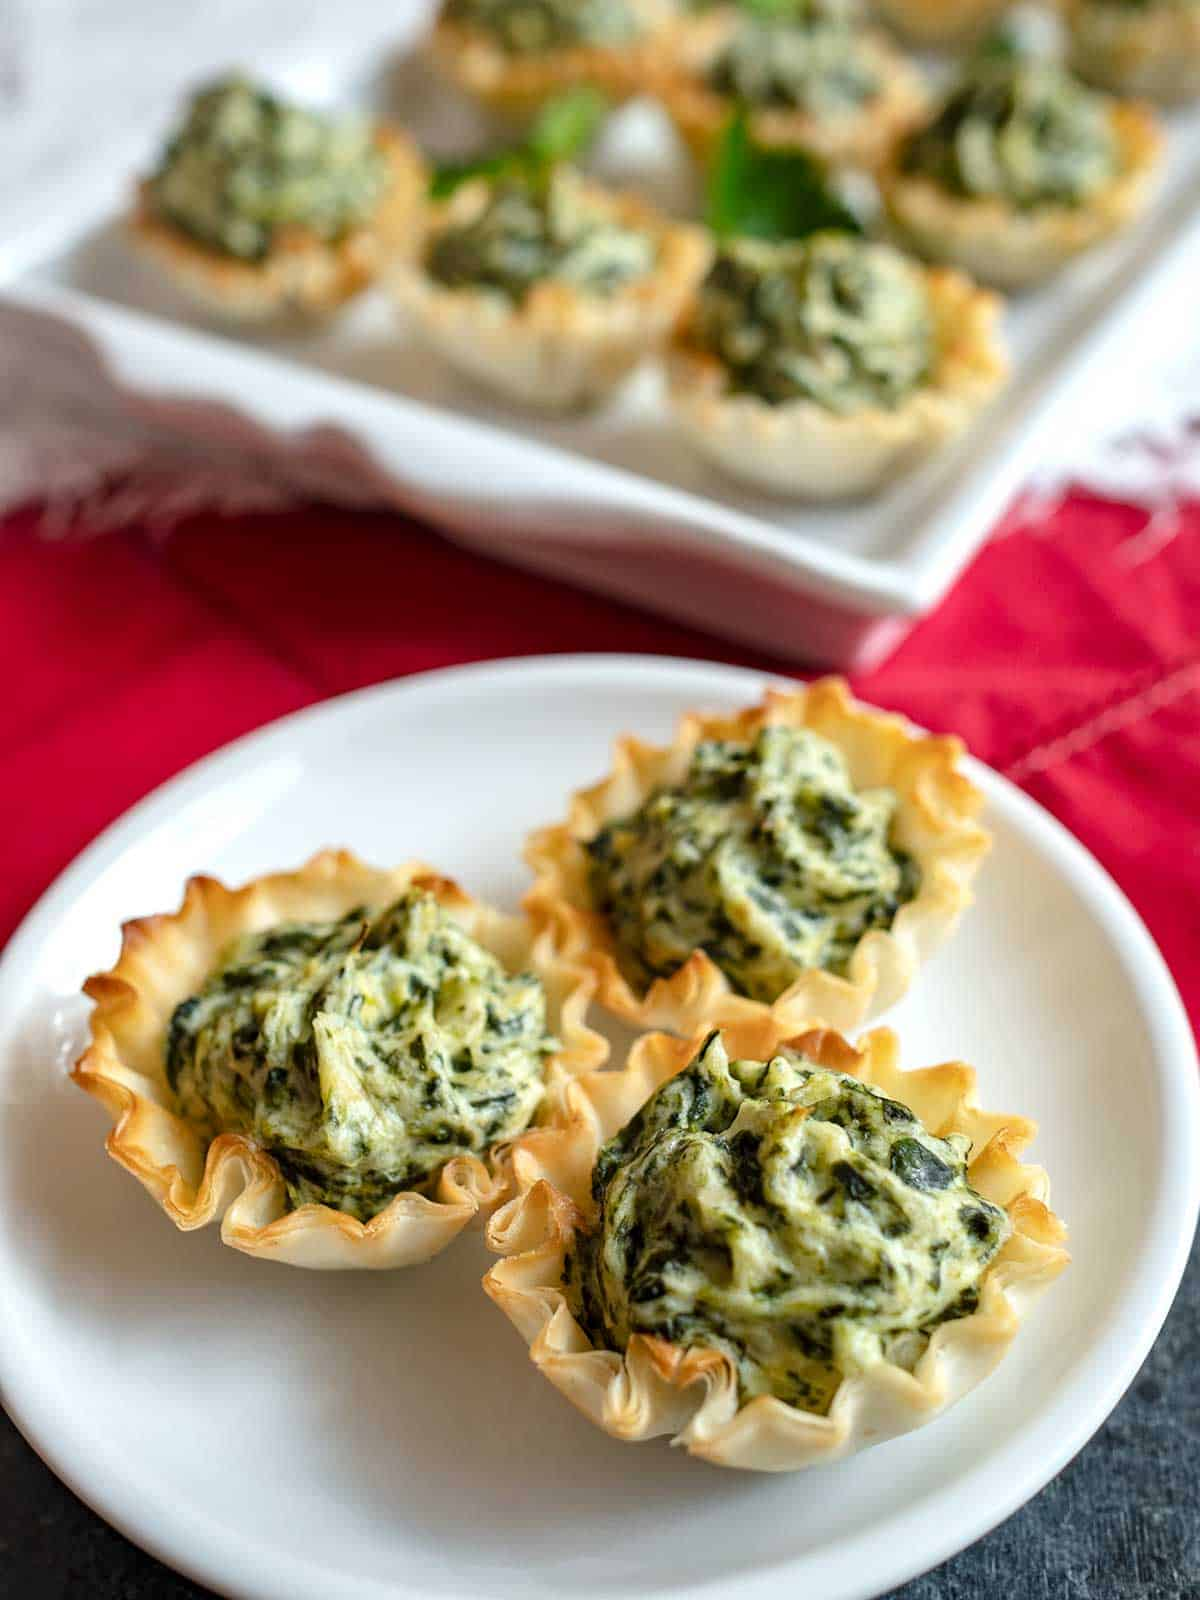 Three spinach artichoke tartlets on a white plate.